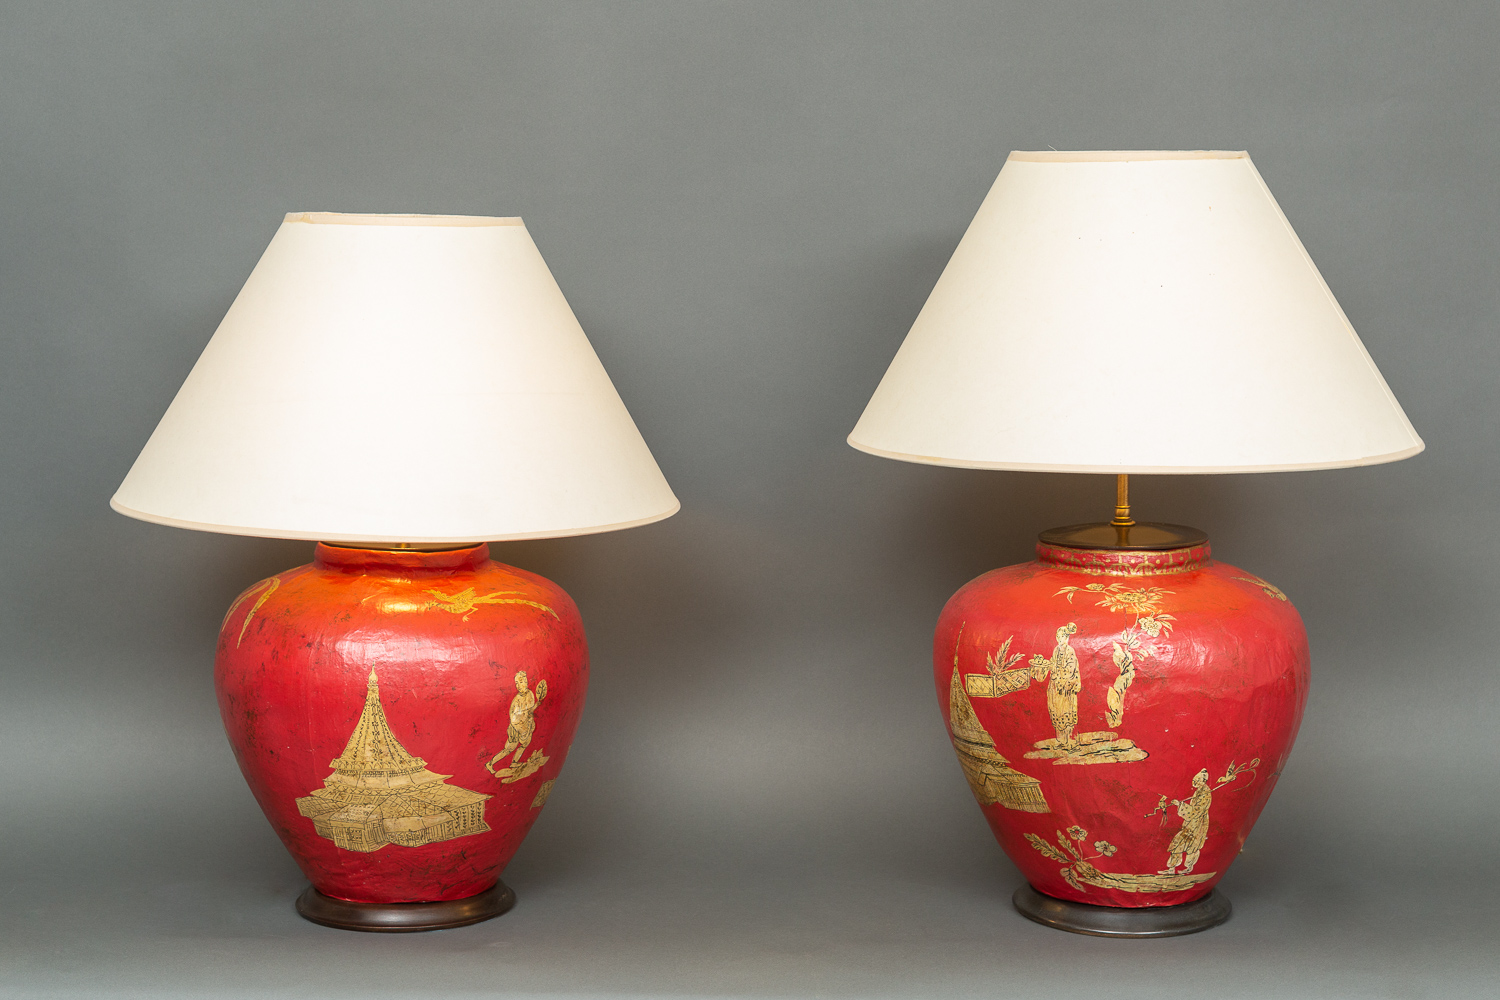 Pair of Handmade Parish Hadley Chinoiserie Decorated Lamps